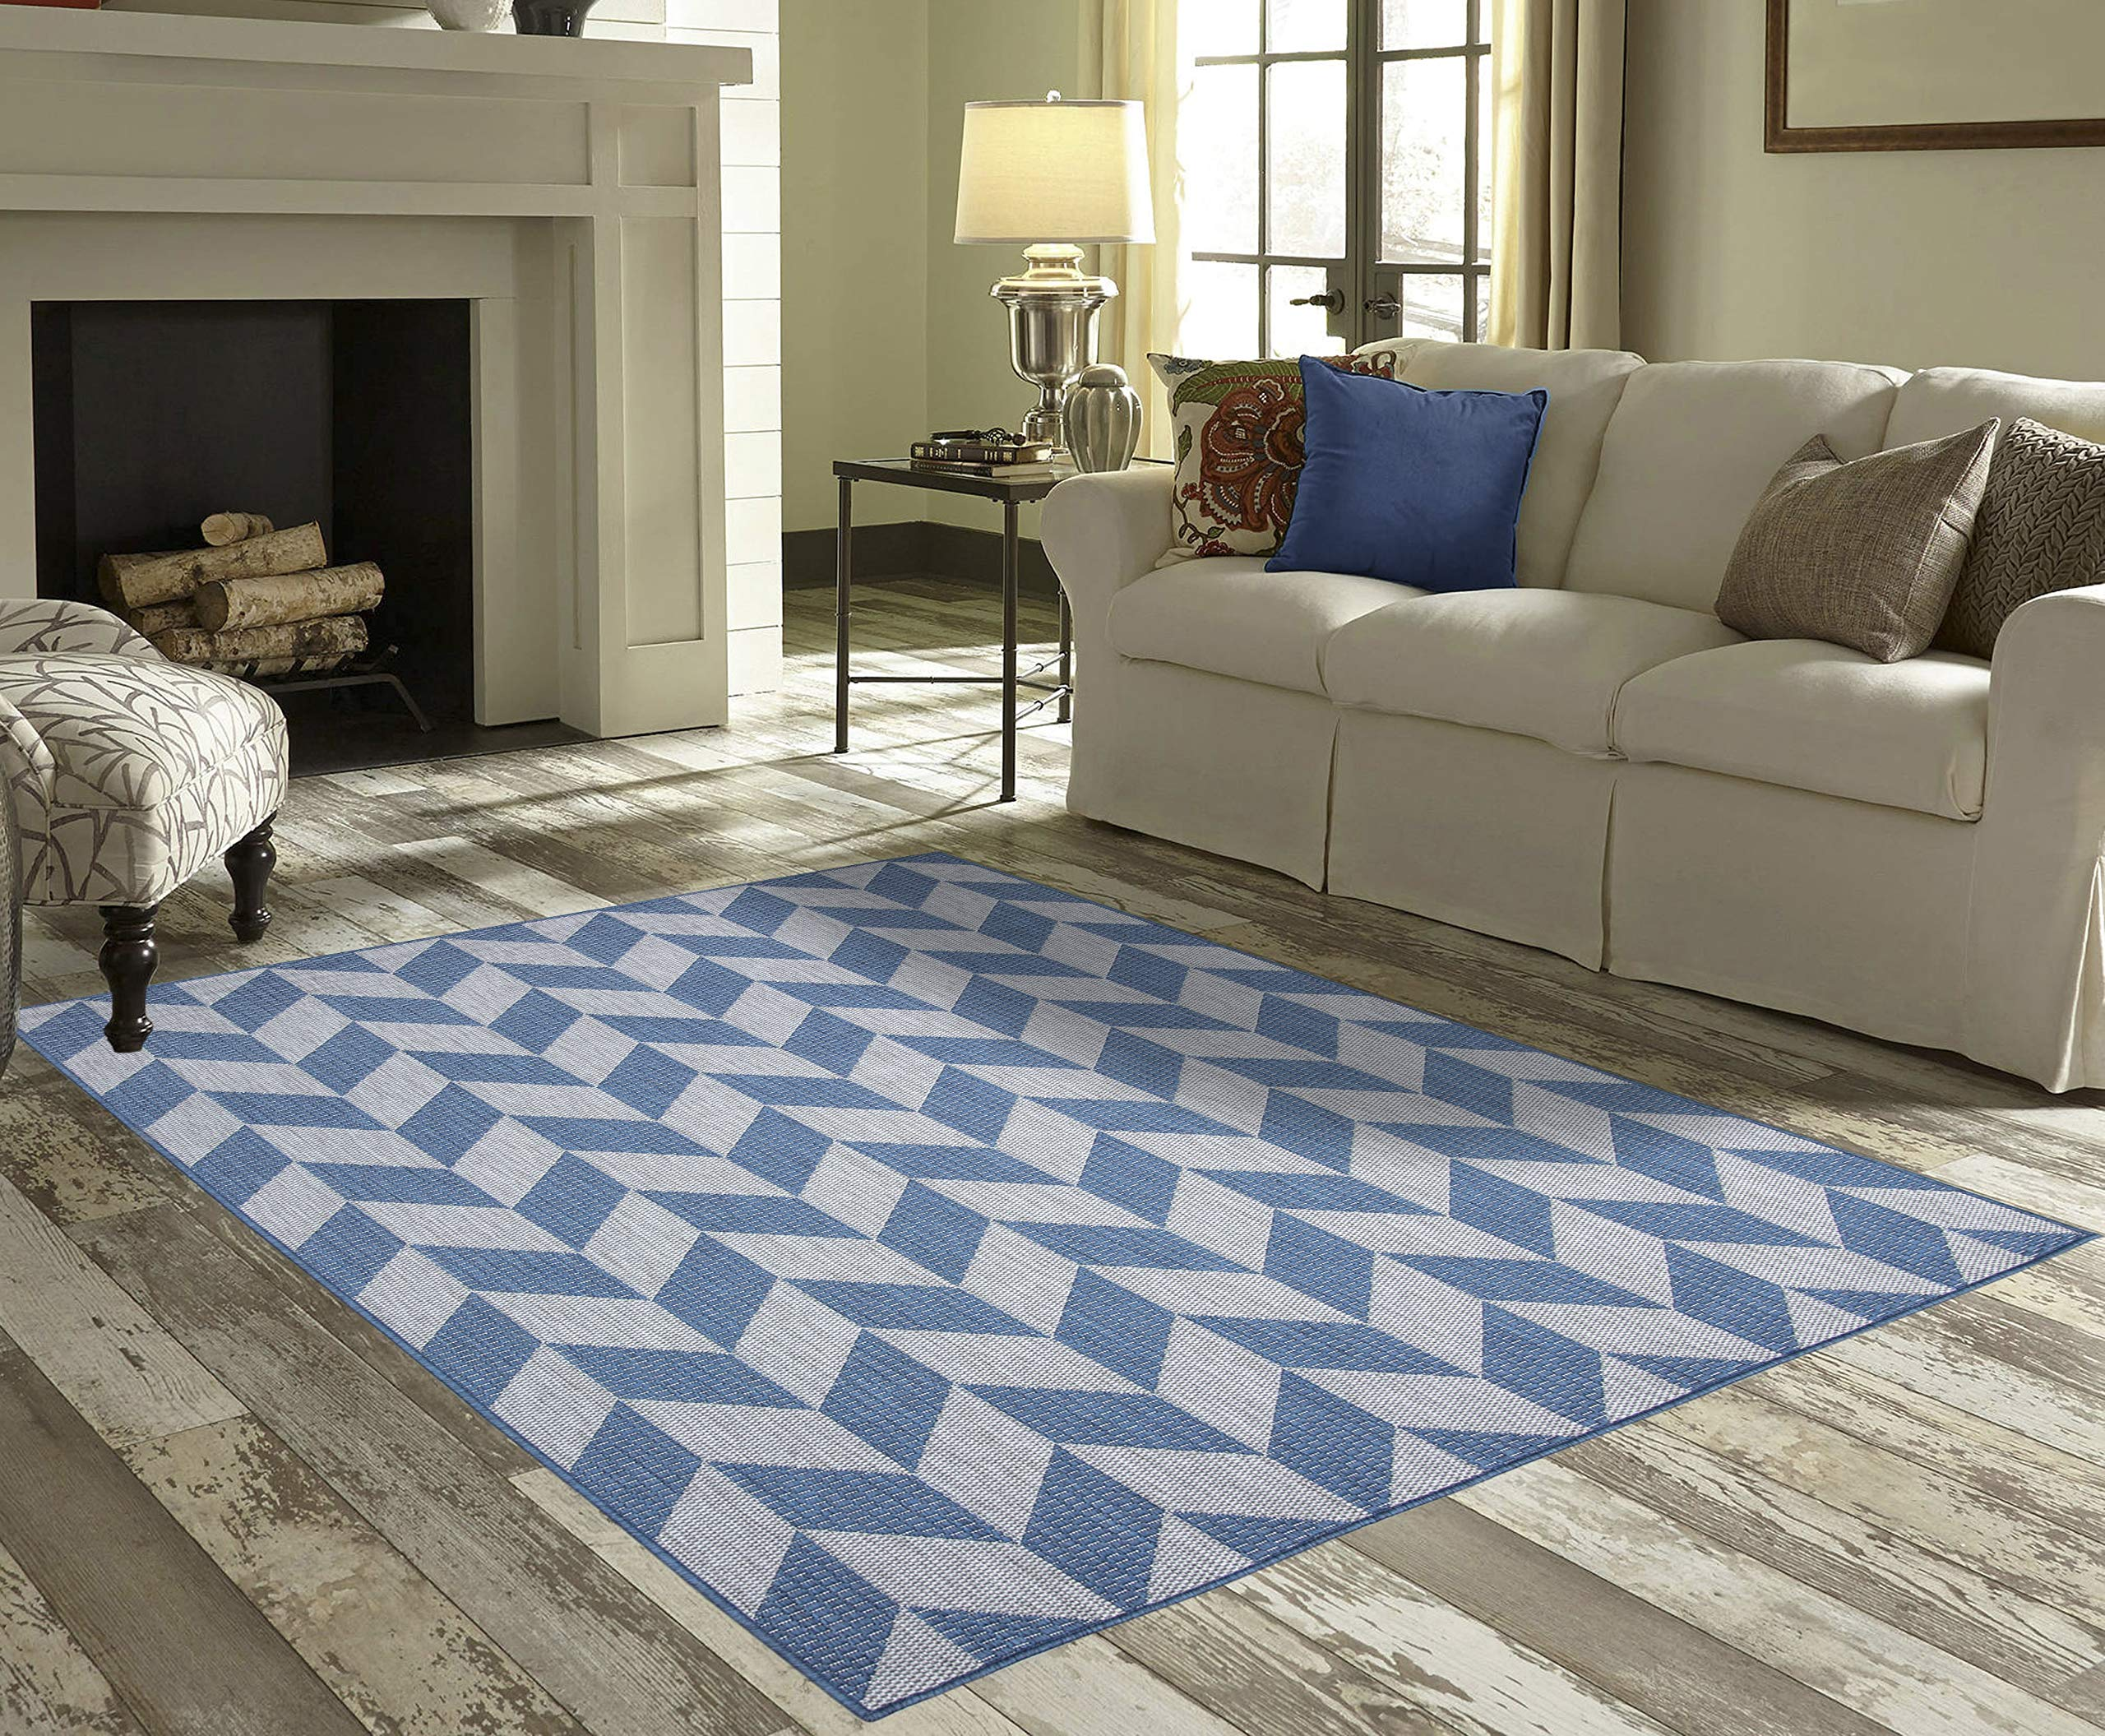 PRIYATE Florida Collection All Weather Indoor/Outdoor Geometric Triangle Rug for Living Room, Bedroom, and Dining Room (7'10'' x 10', Blue)